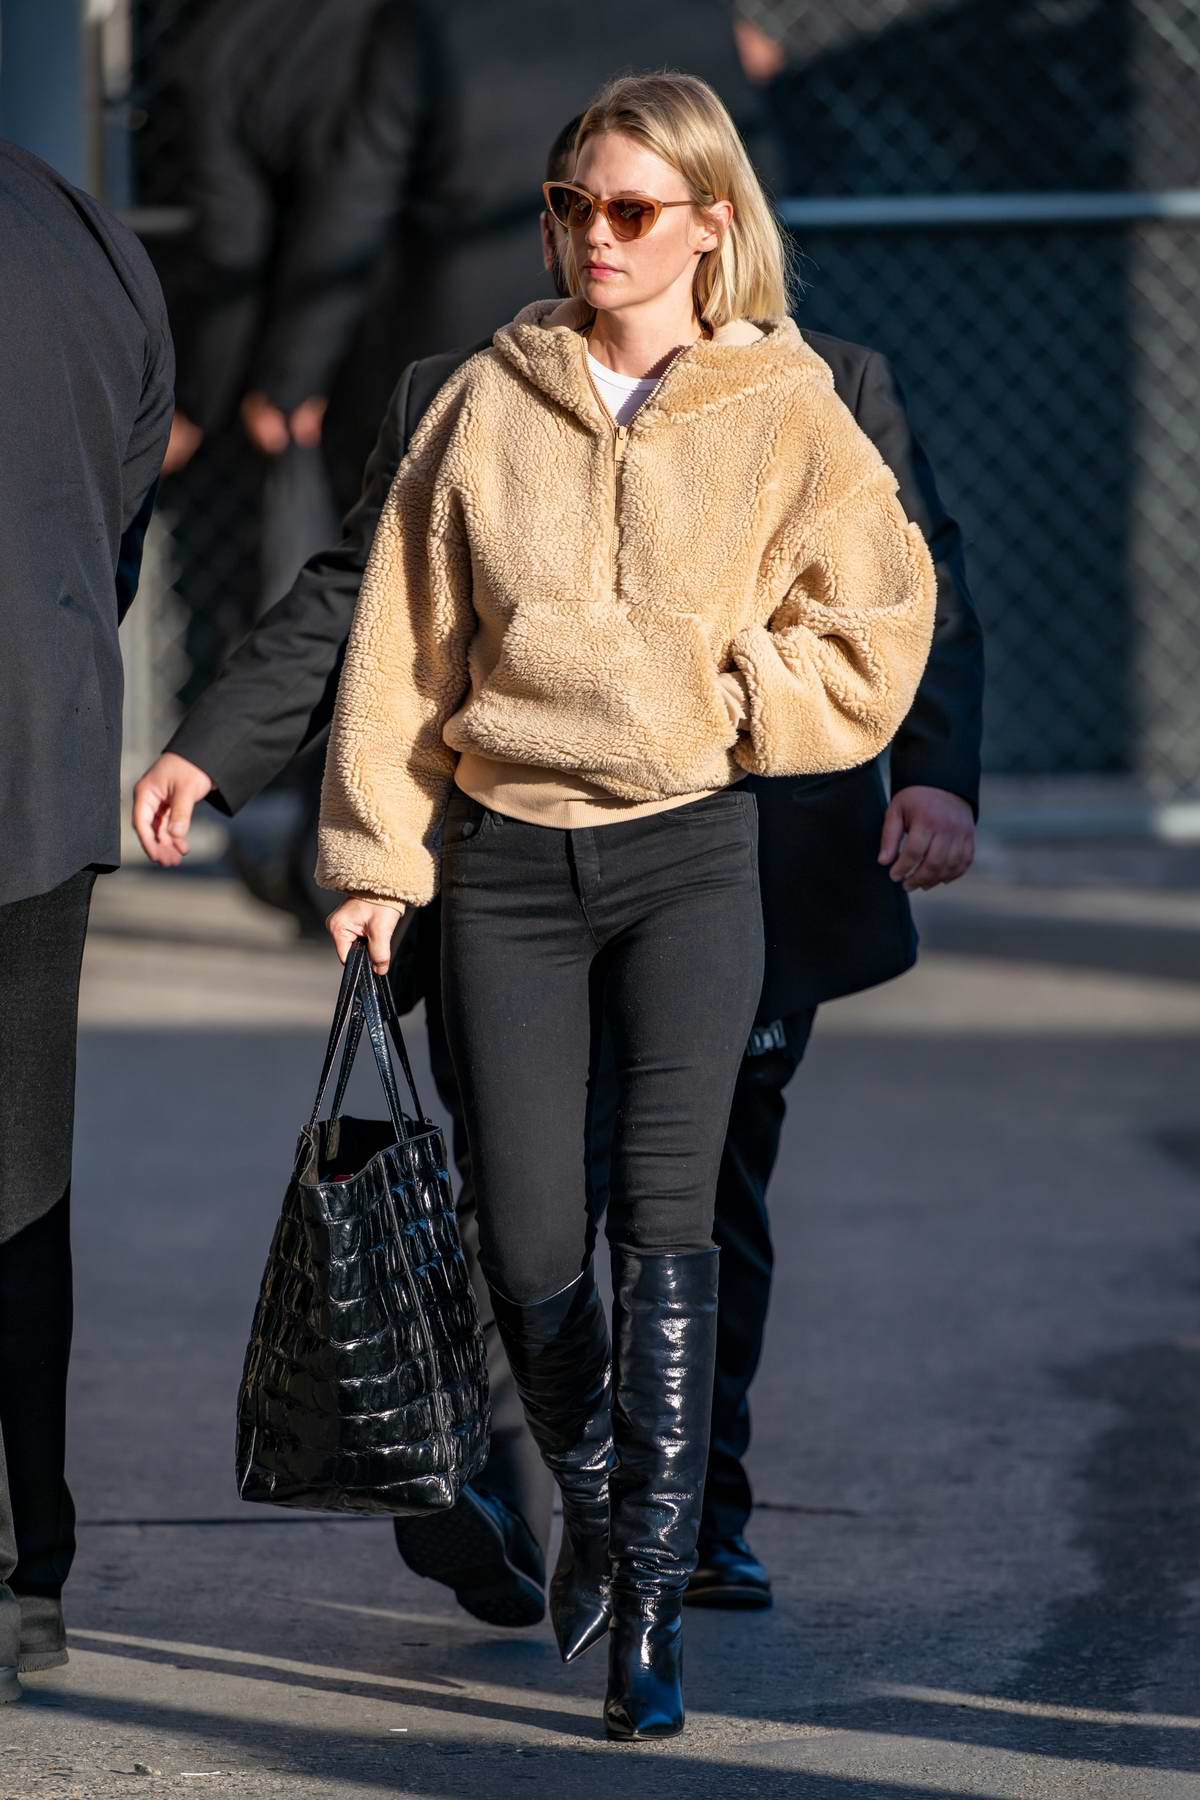 January Jones looks great in a beige teddy jacket and black skinny jeans as she arrives at 'Jimmy Kimmel Live' in Los Angeles